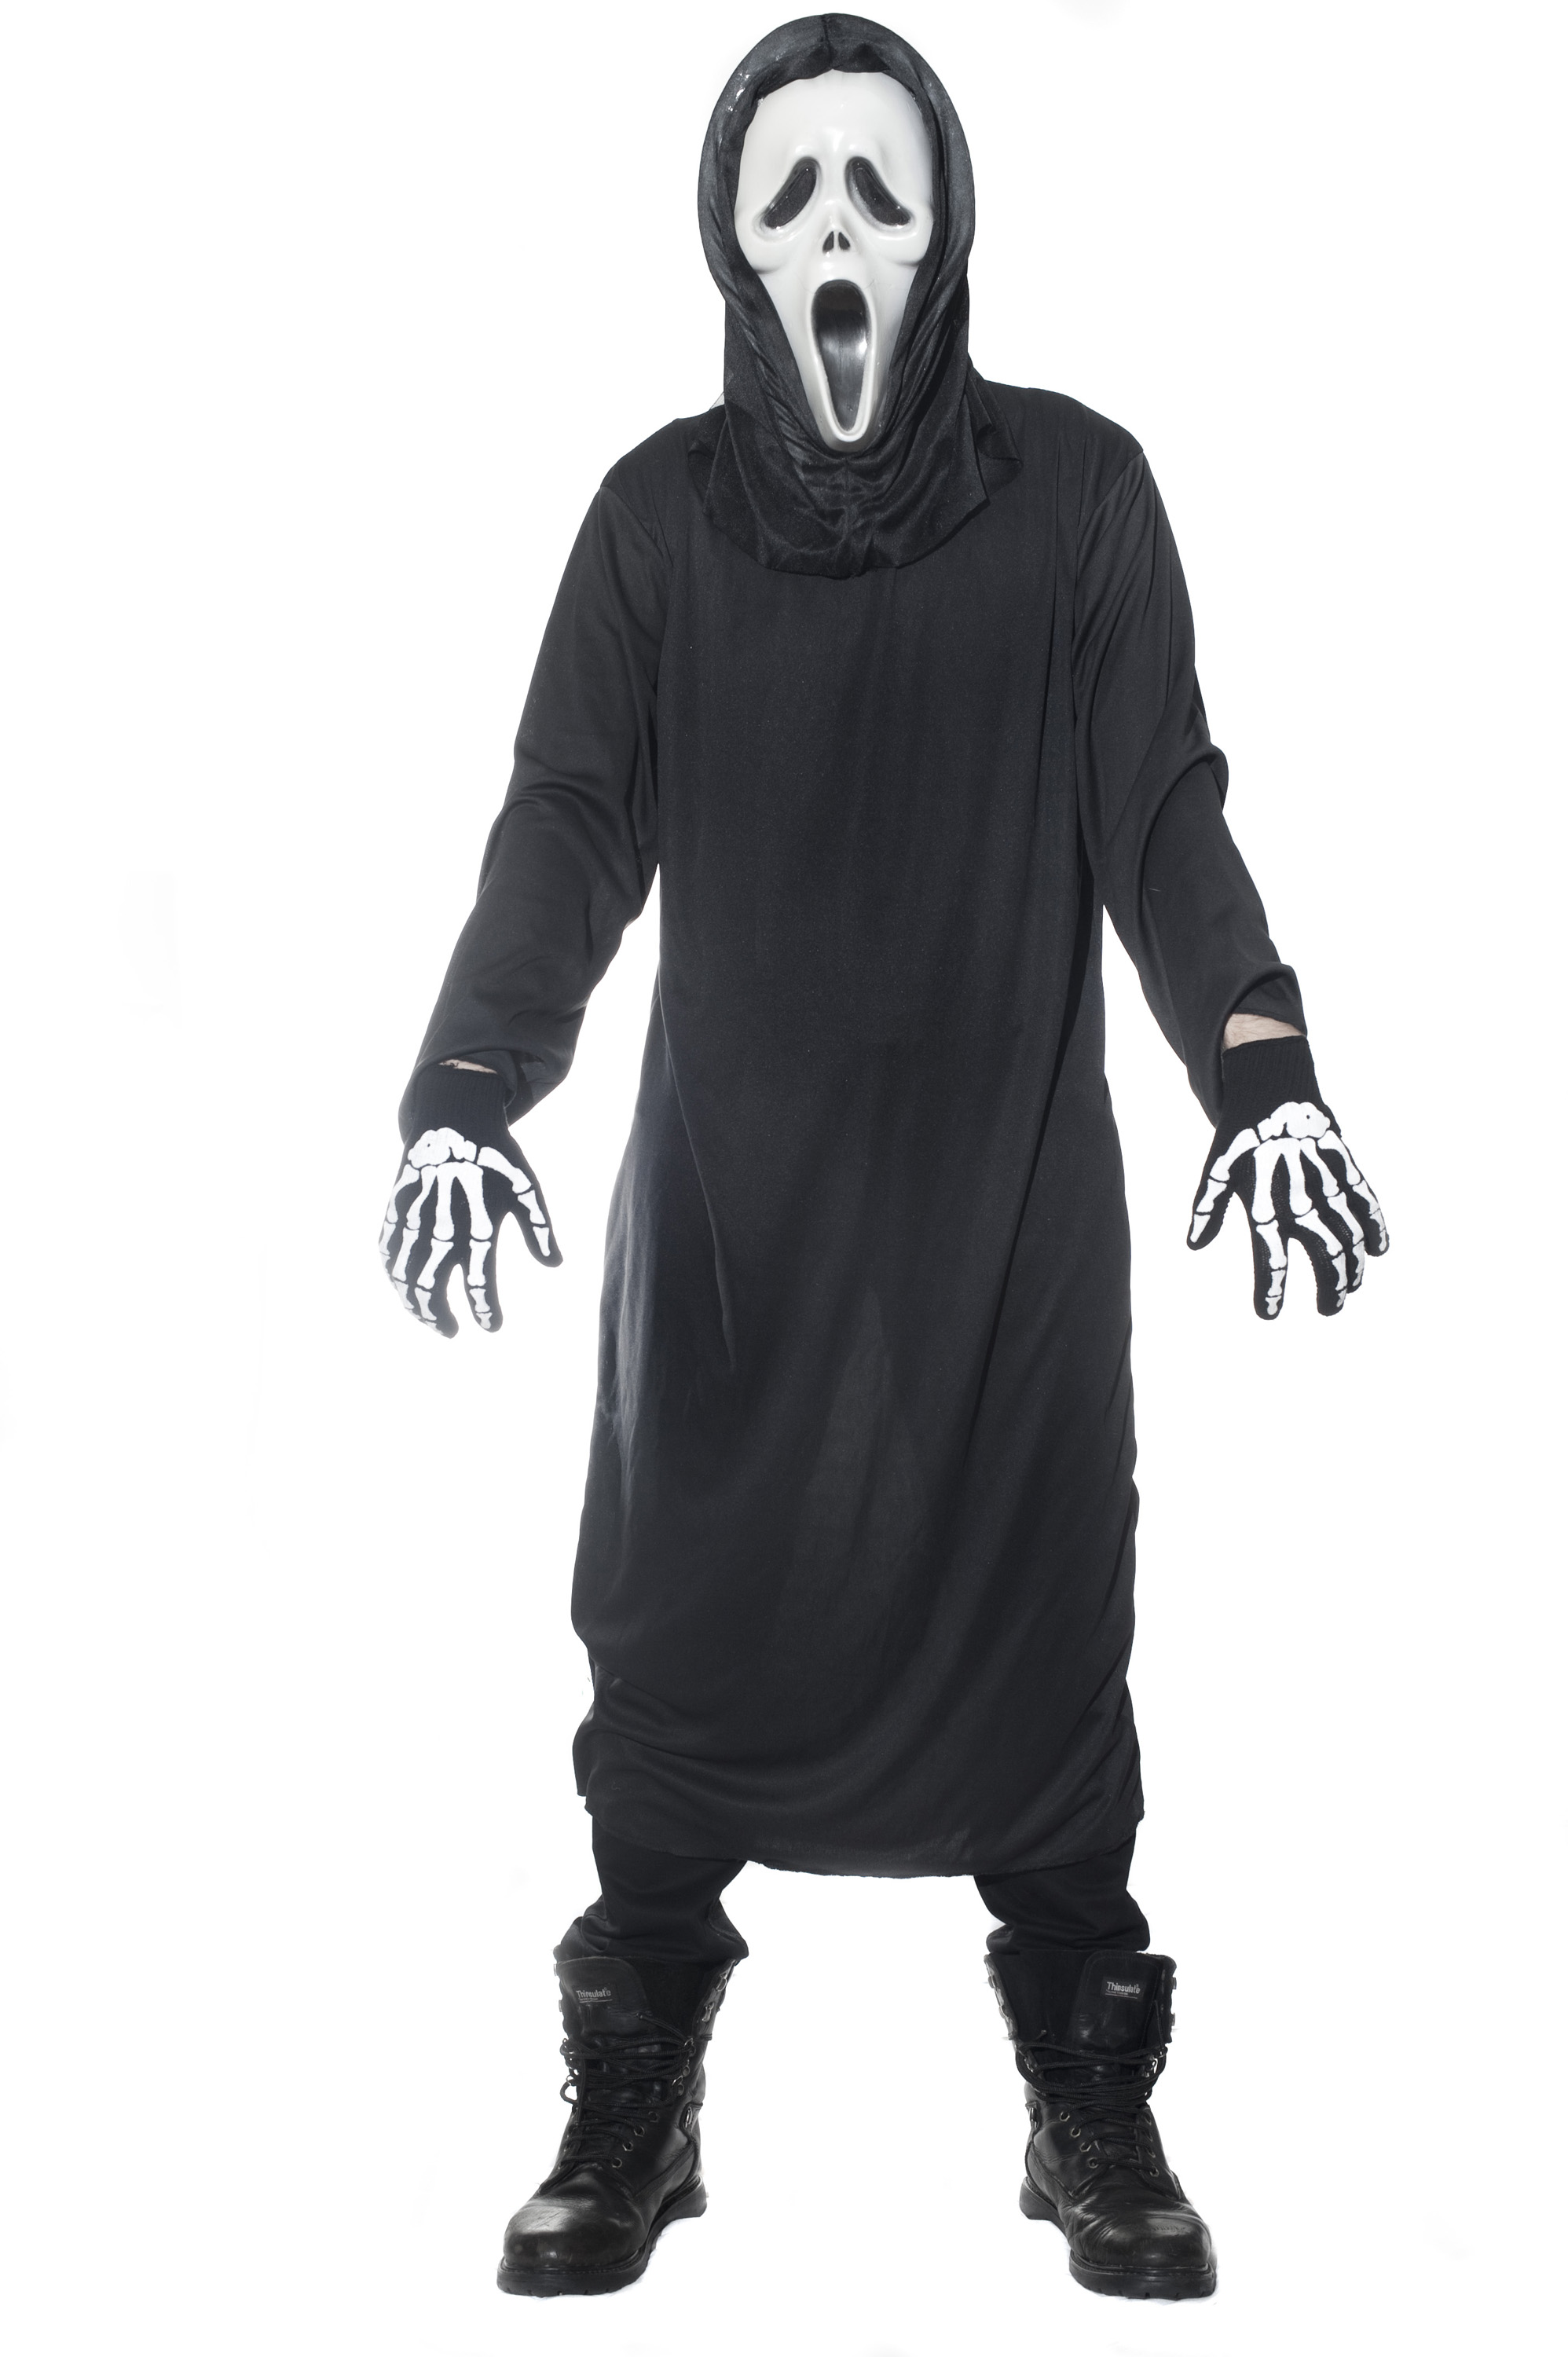 Free Stock Photo 2982-halloween ghost costume | freeimageslive